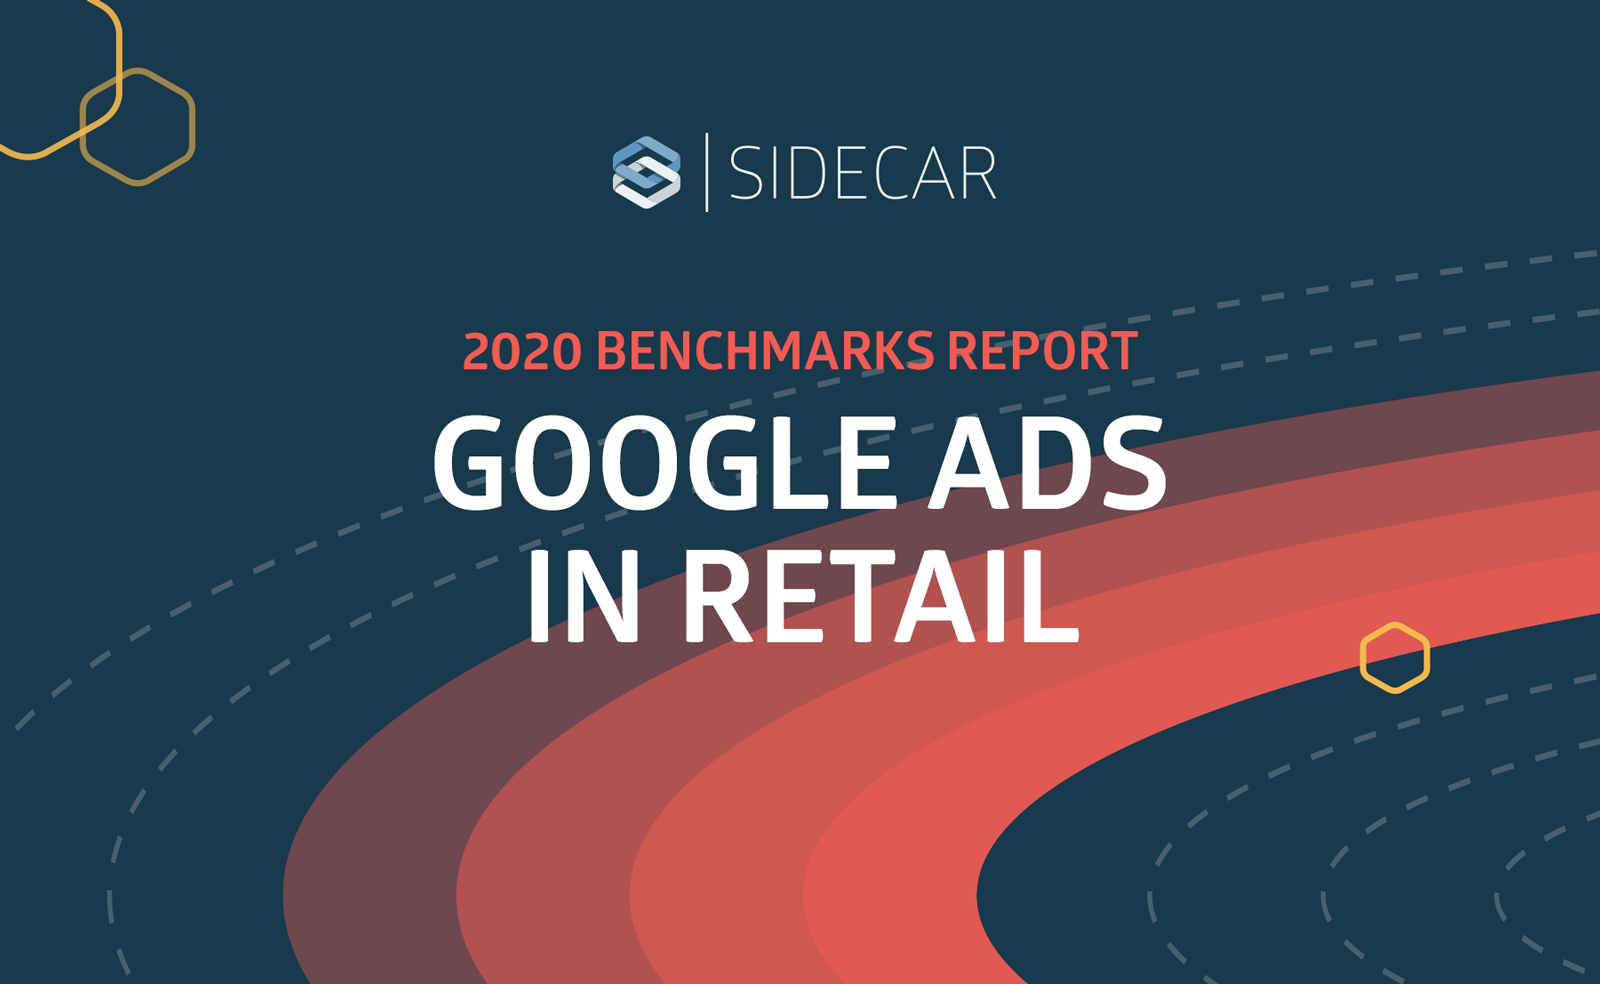 2020 Google Ads Performance Benchmarks Report for Retail Now Available